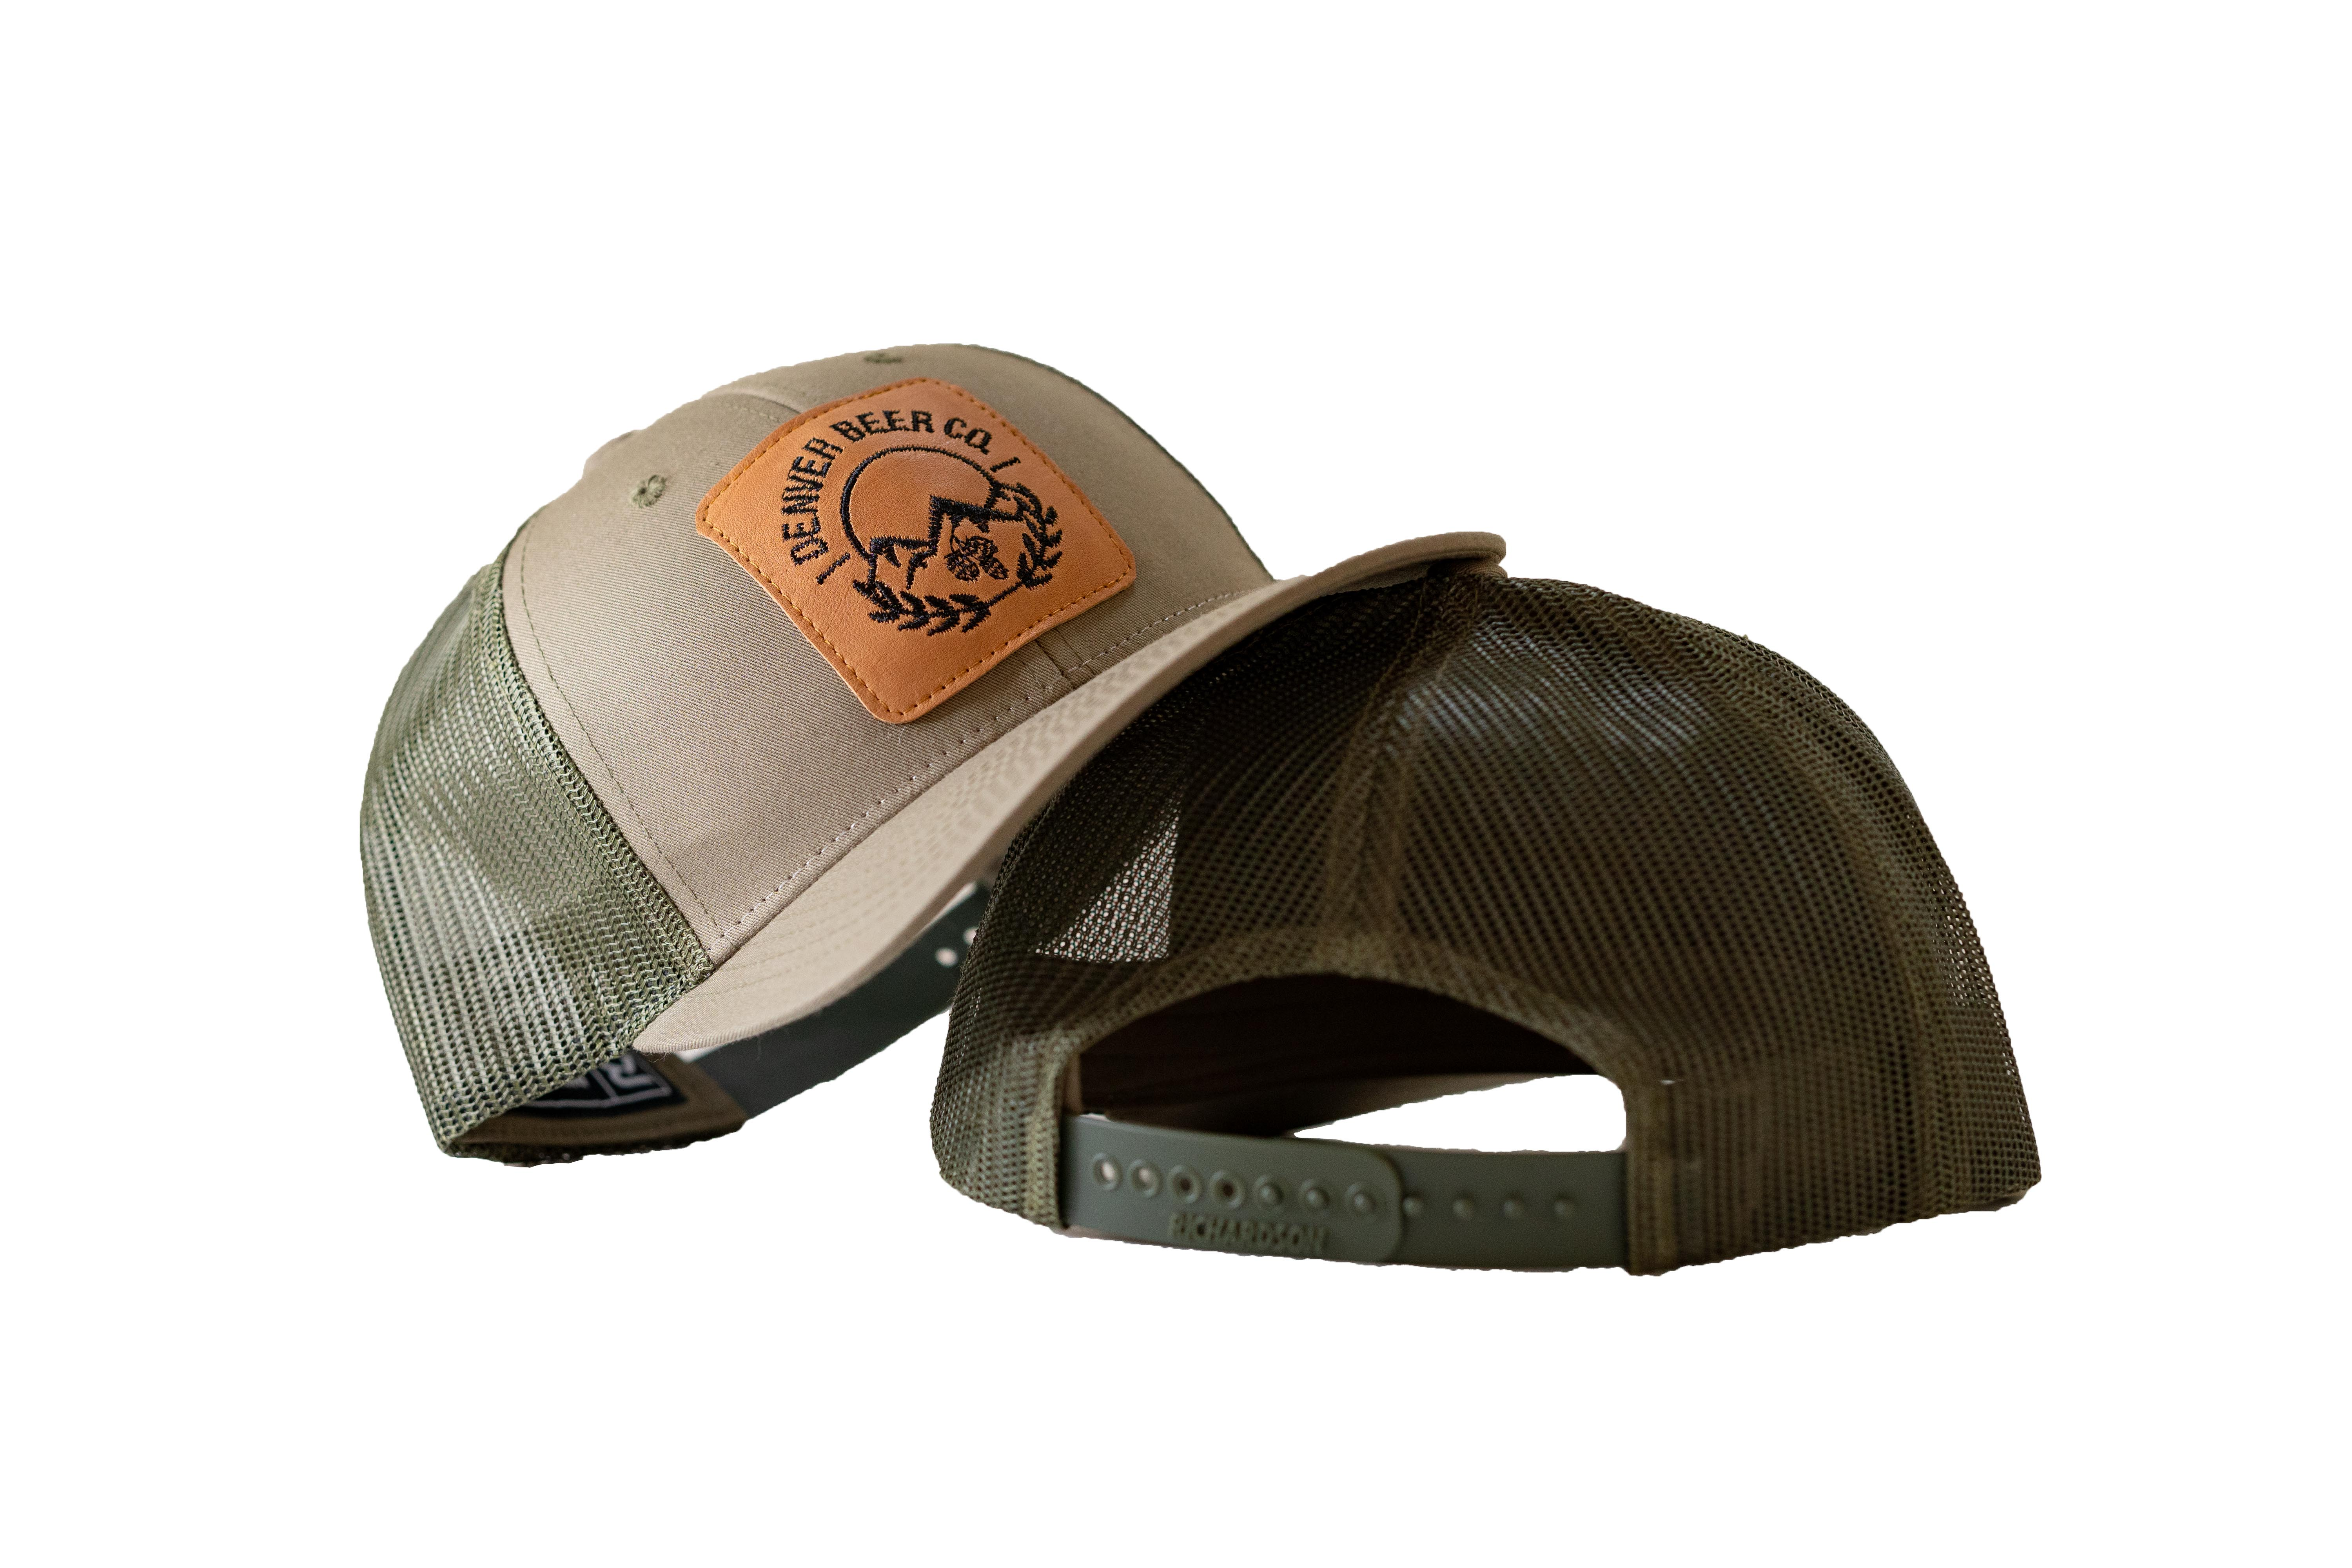 Denver Beer Co Trucker Hat, Snap Back, Olive Green, with Embroidered Leather Patch_MAIN